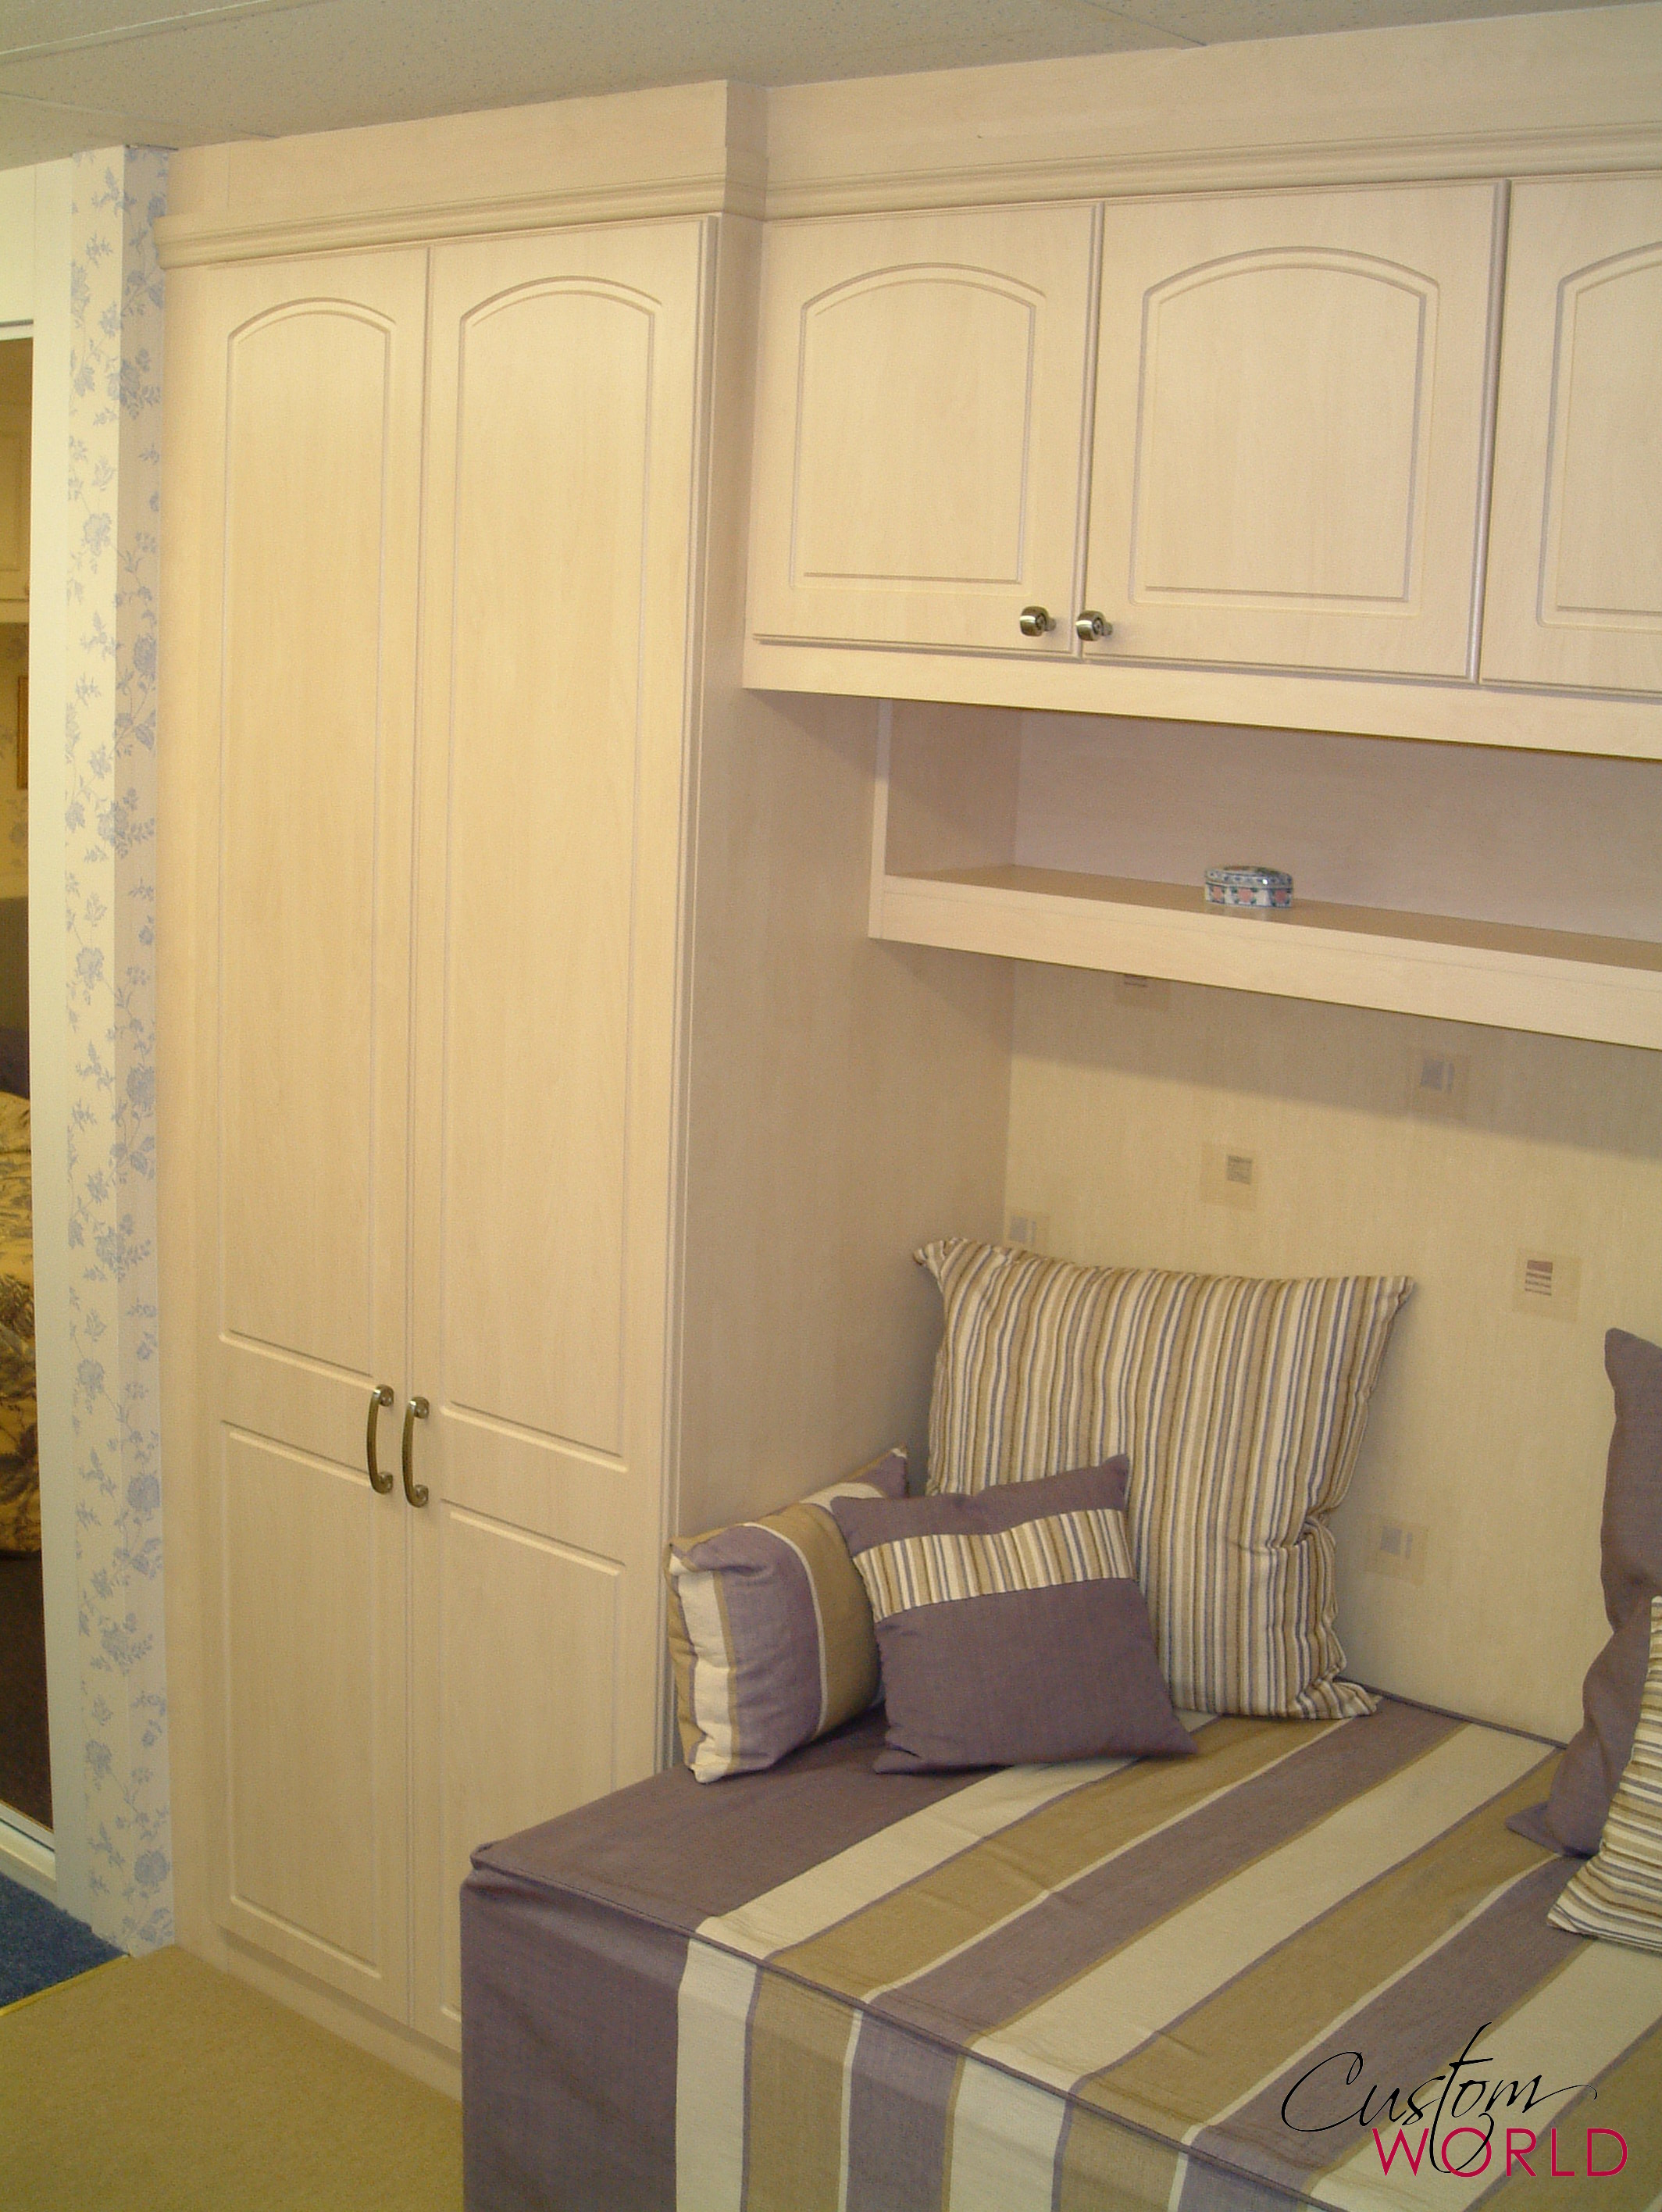 Bespoke cabin bed made to fit most small rooms